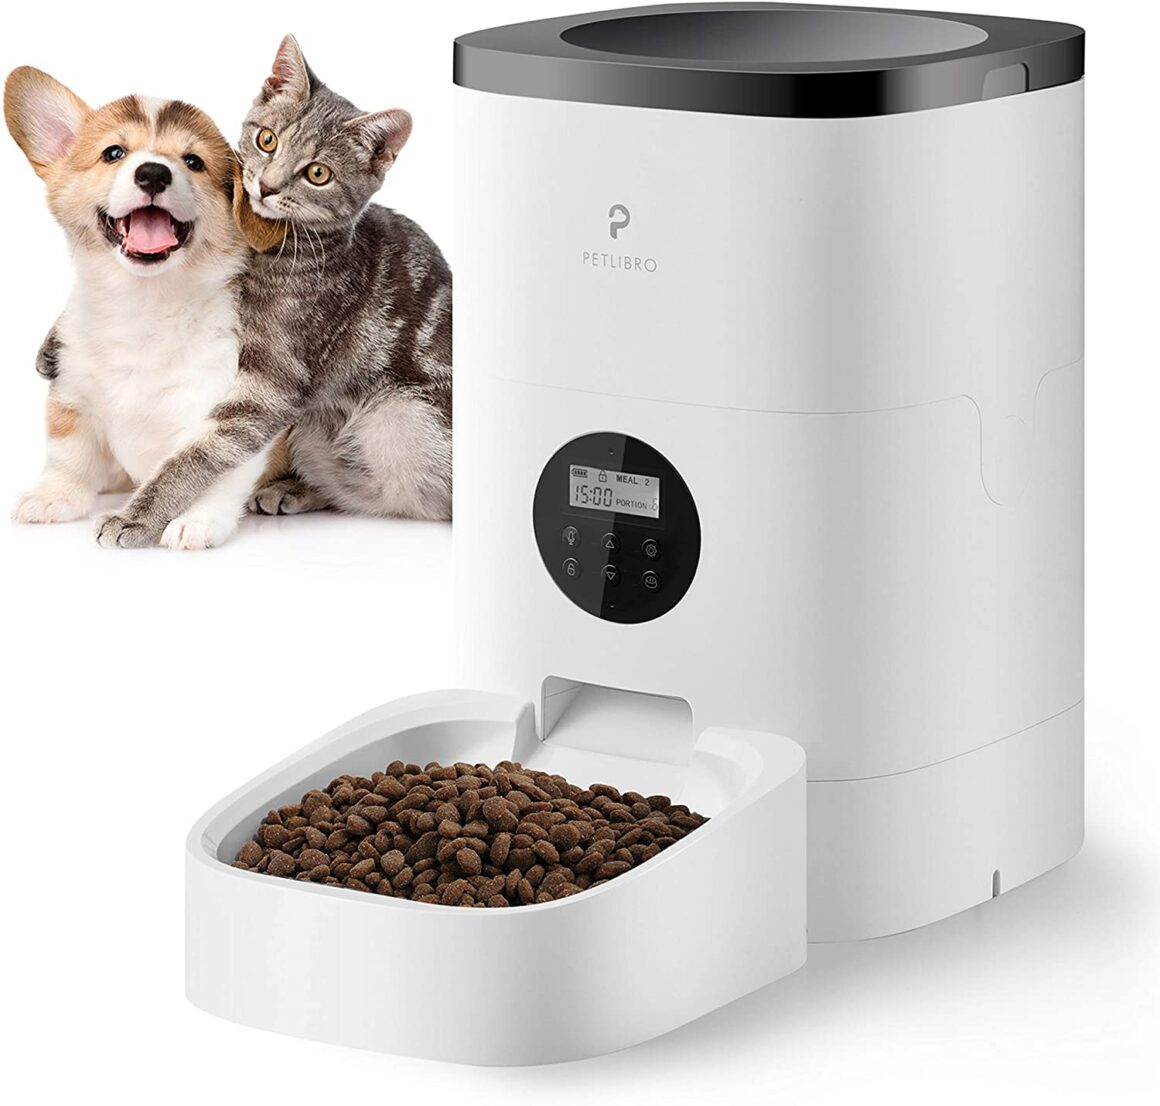 The PetLibro Automatic Pet Feeder